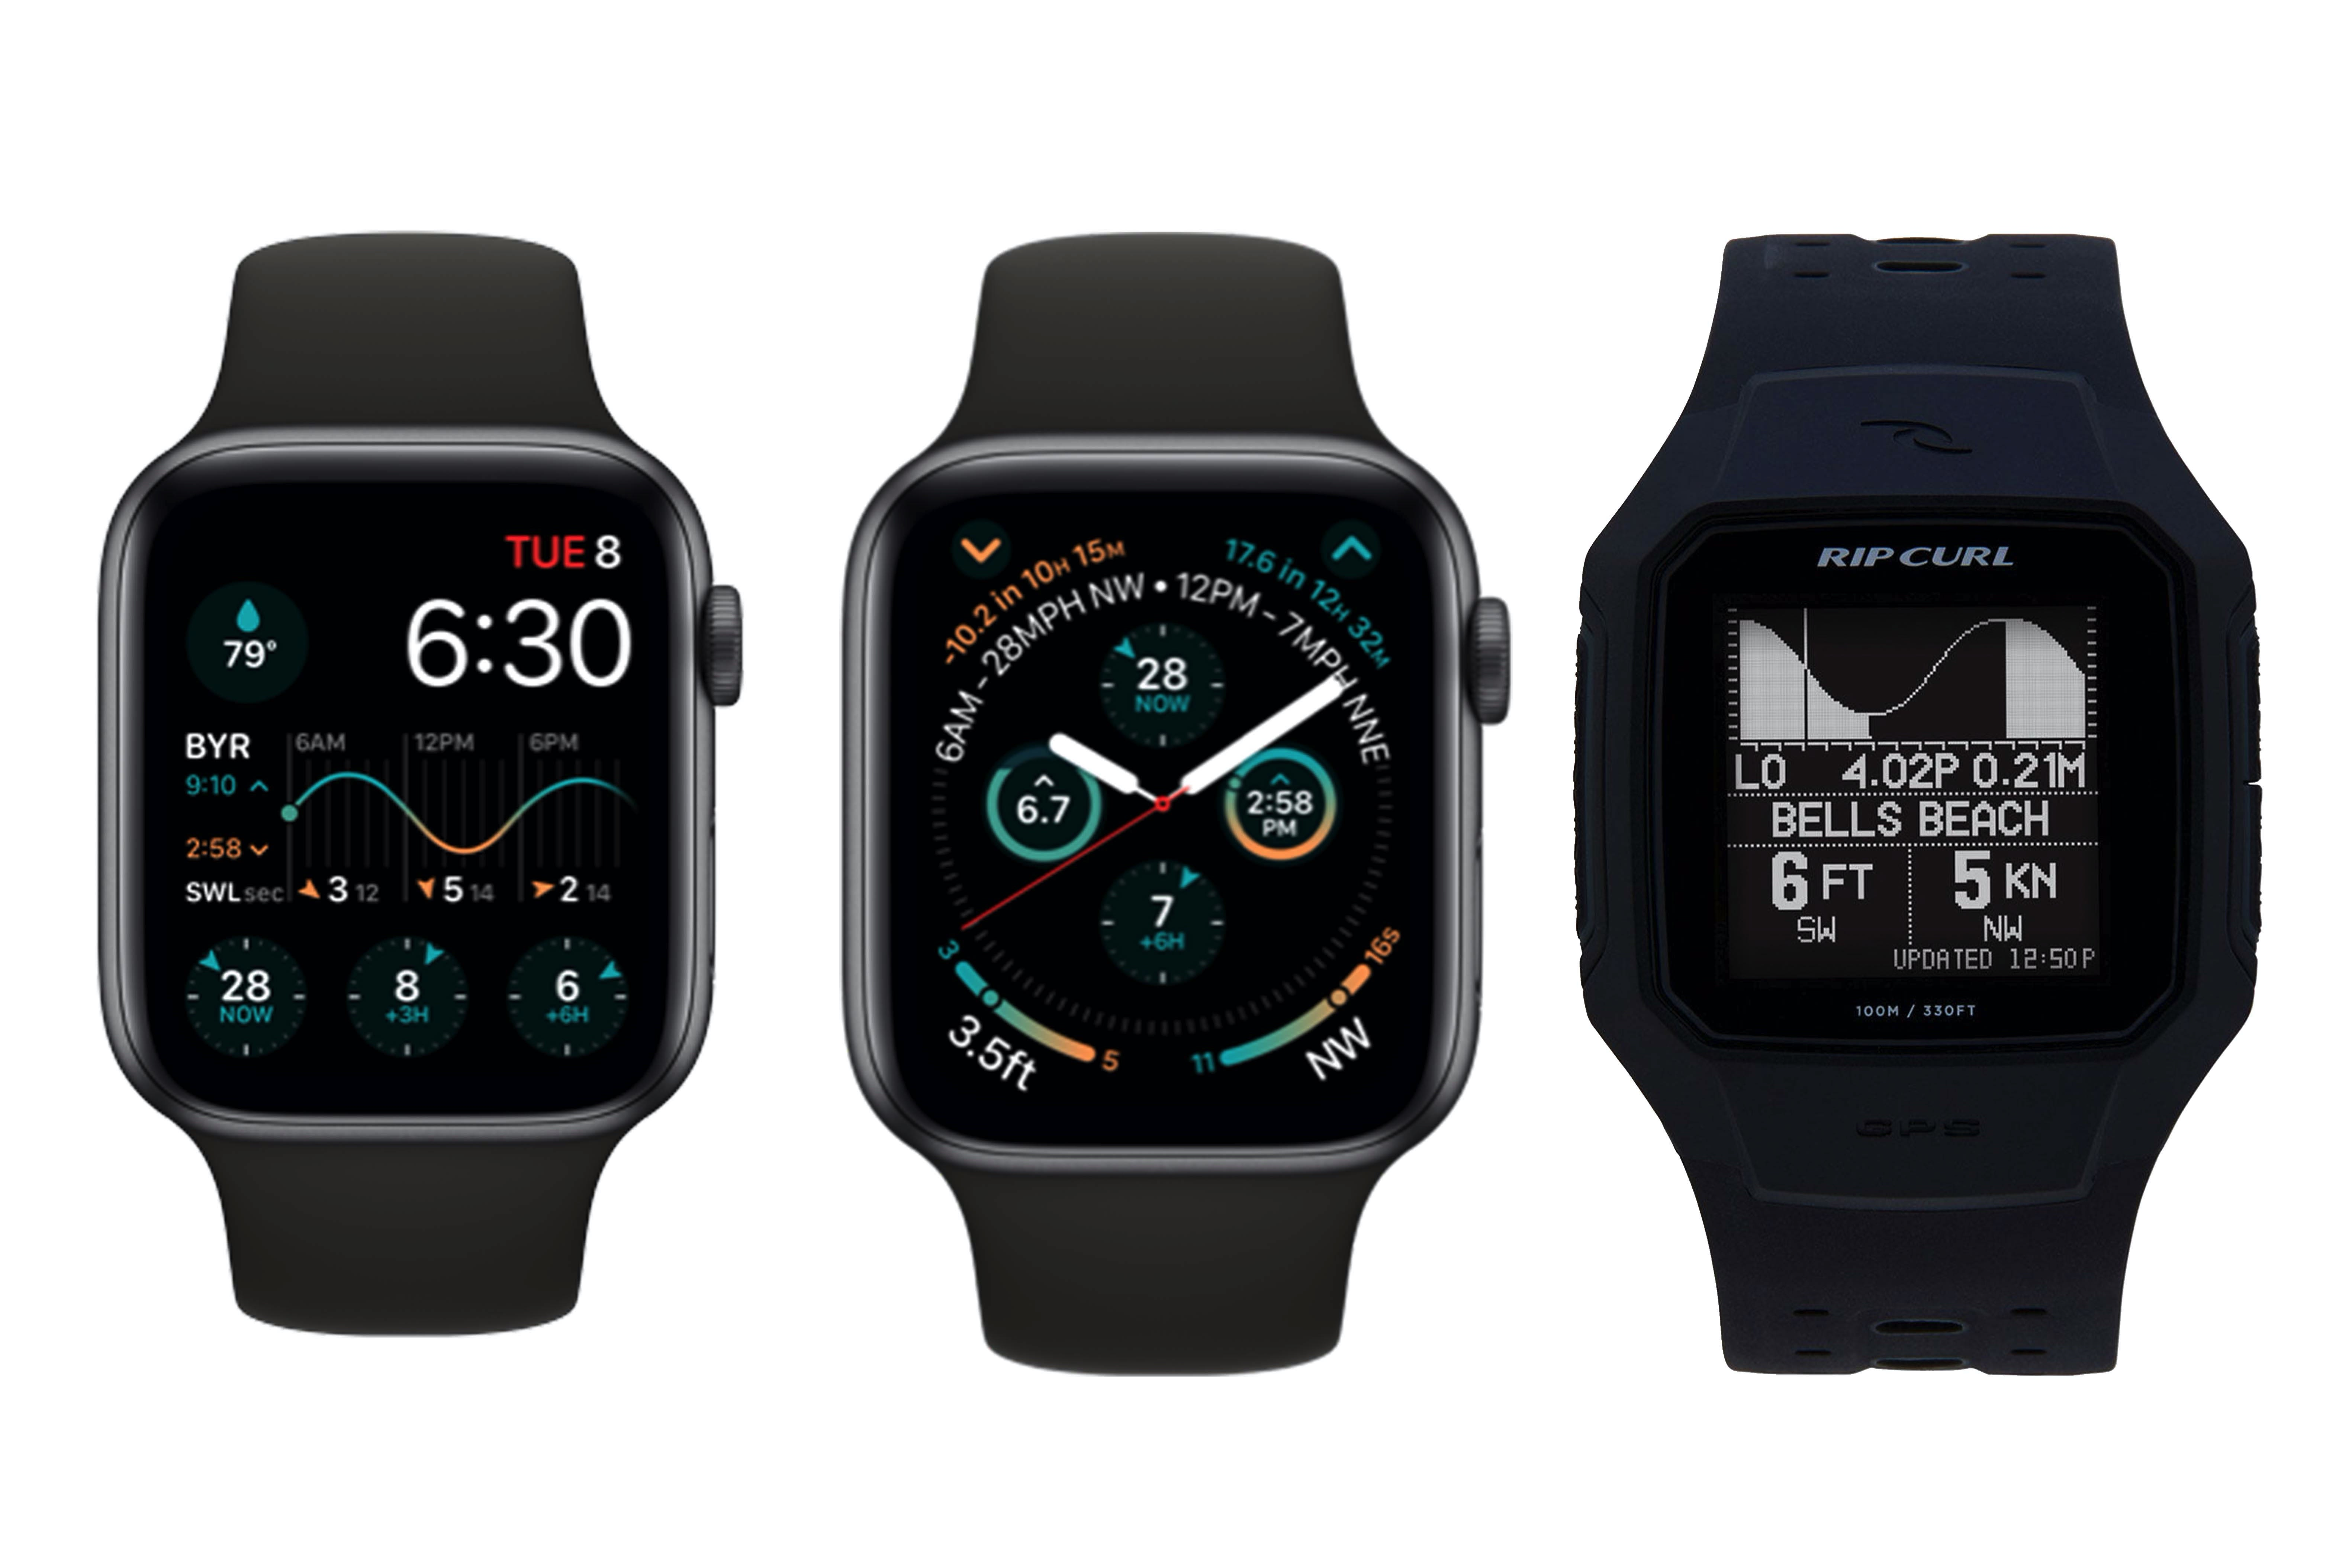 Apple Watch Series 6 Face show swell and tide charts